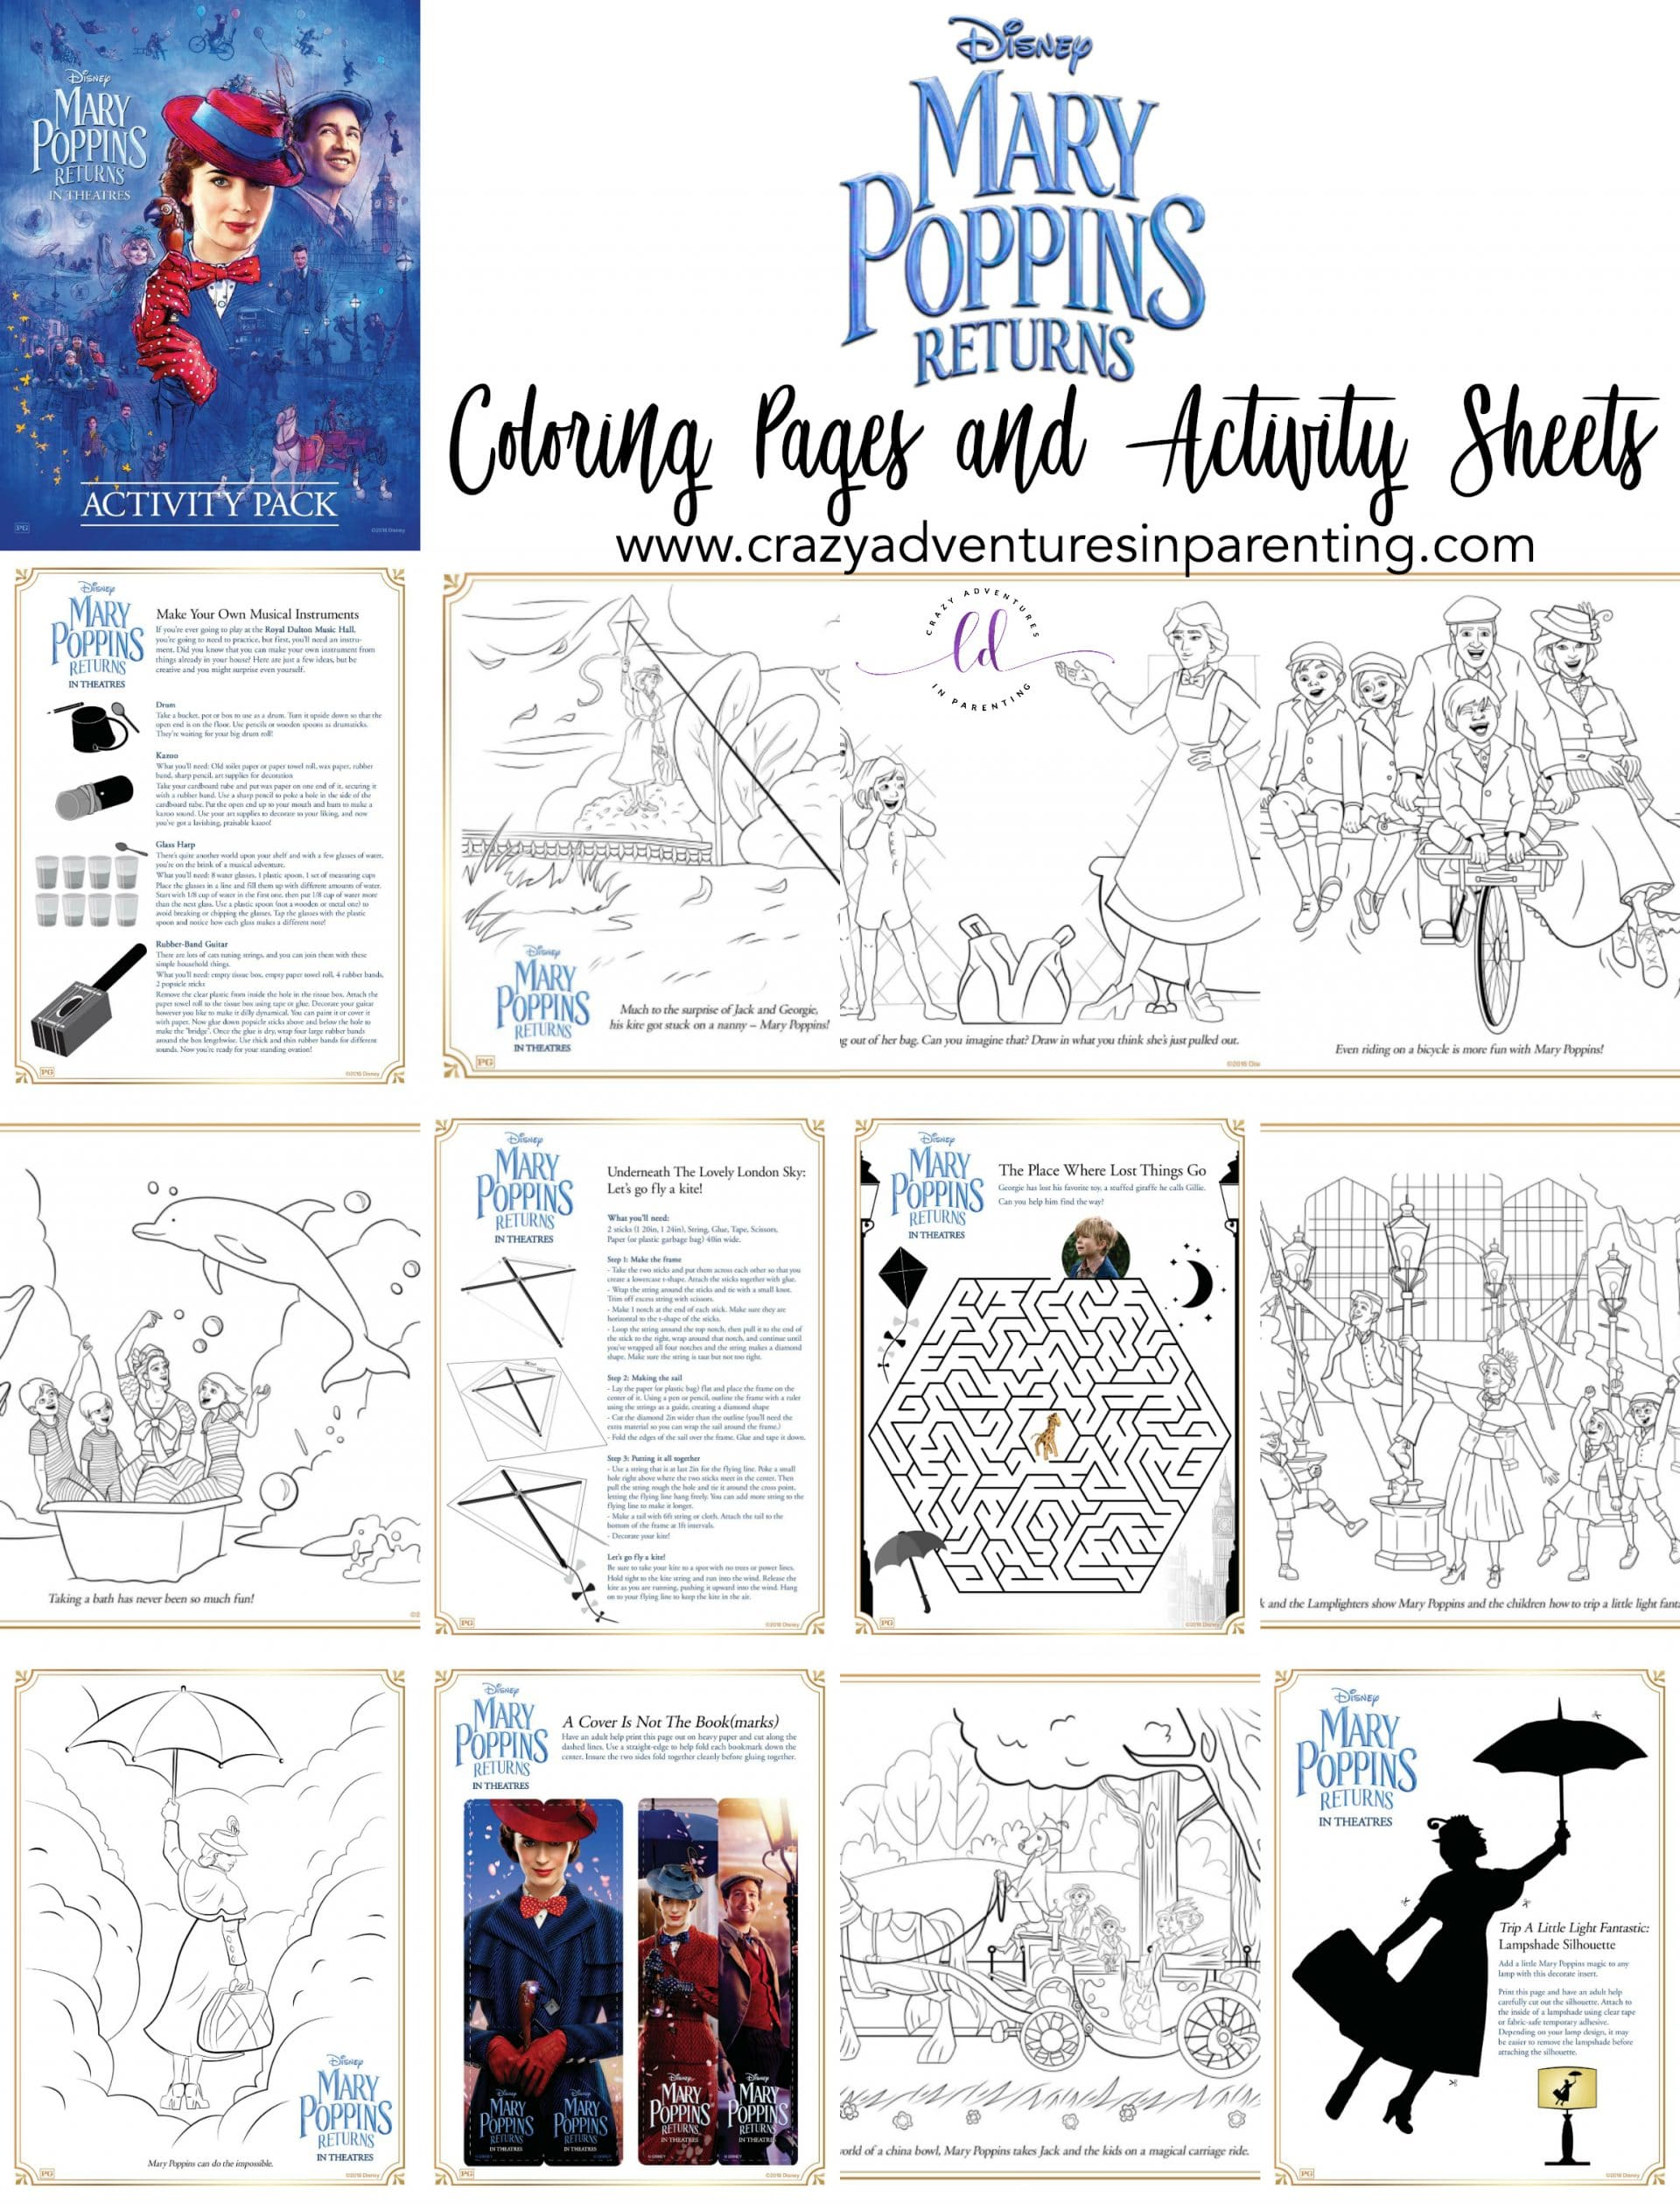 Mary Poppins Returns Activity Sheets and Coloring Pages